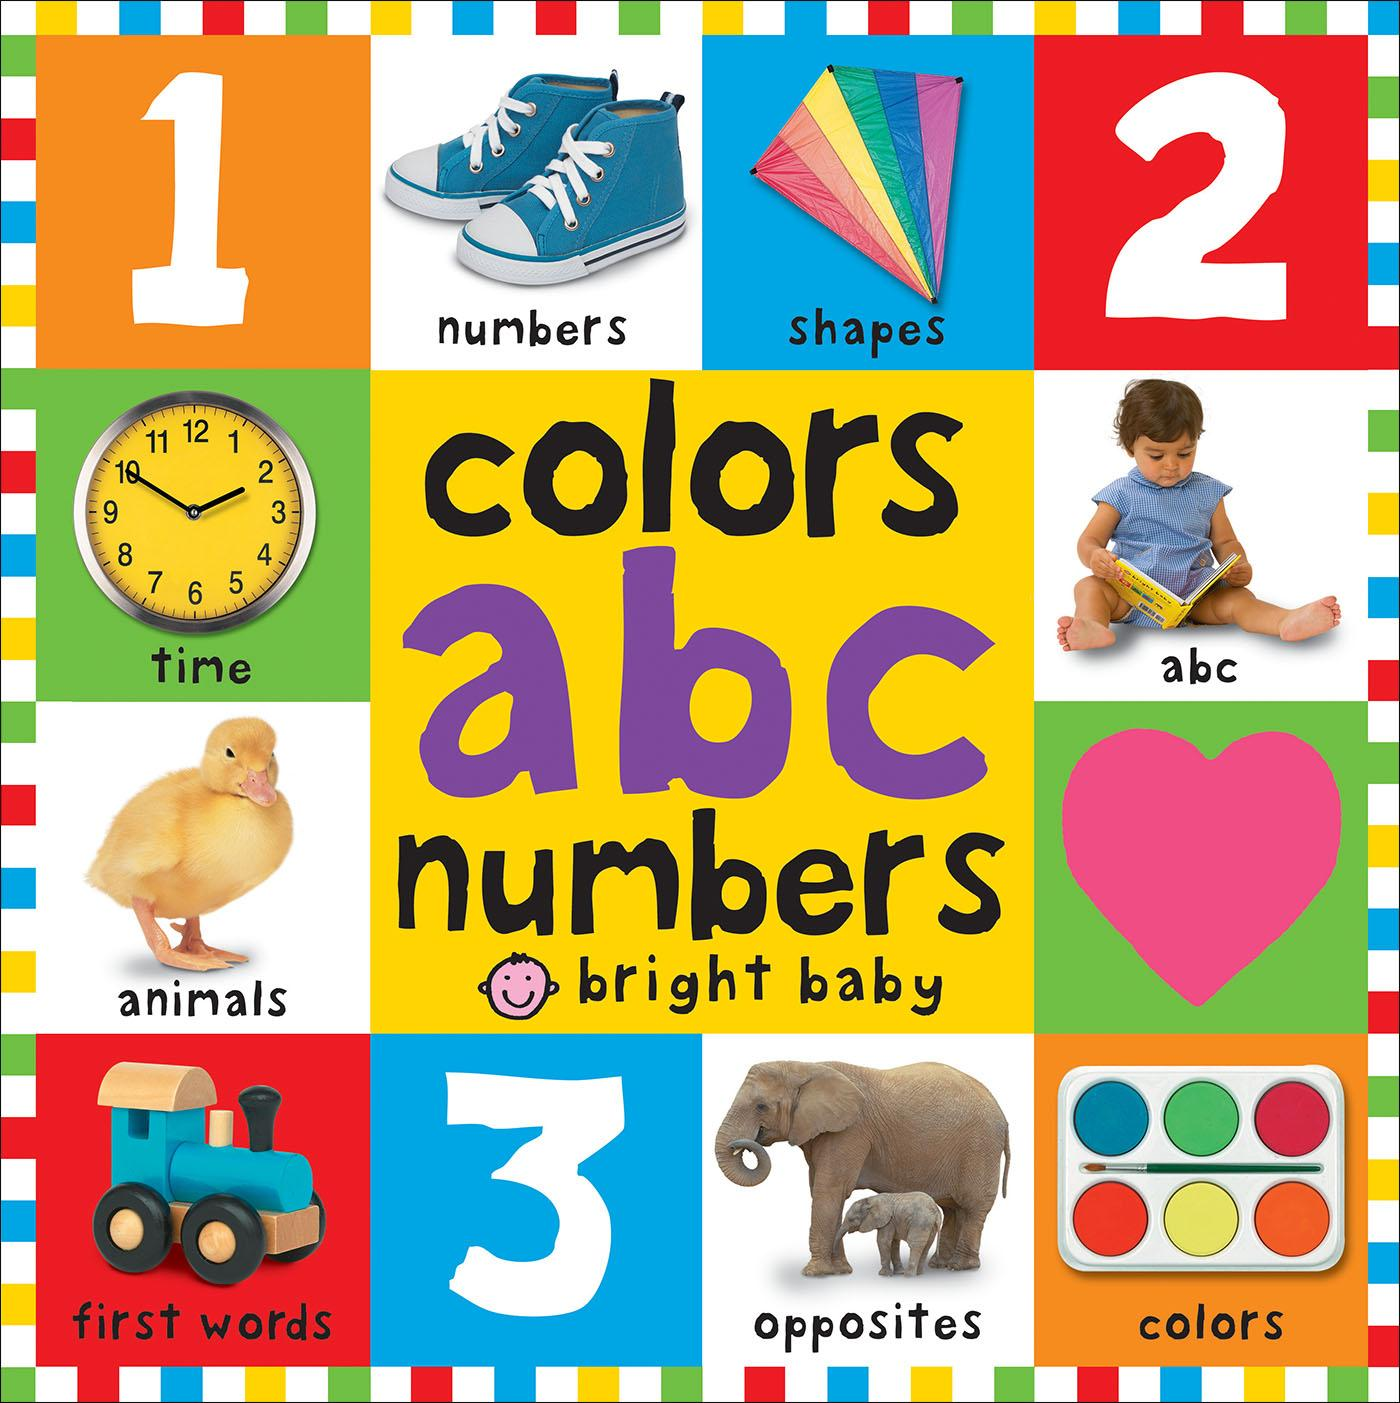 Bright Baby: Bright Baby Colors, ABC, Numbers (Board Book)